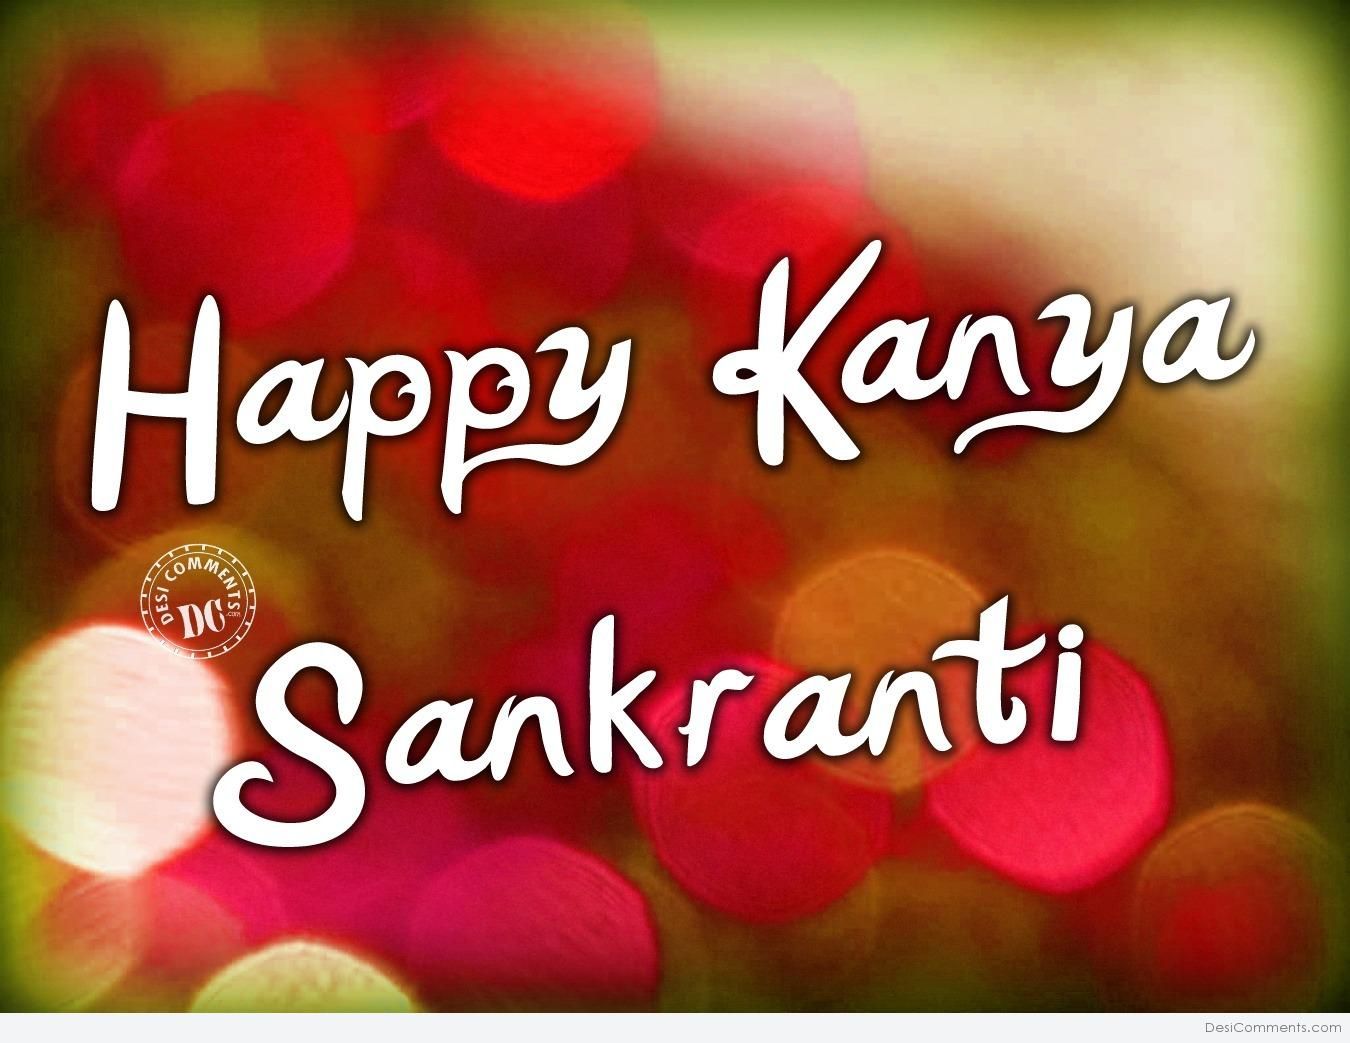 Happy Kanya Sankranti Images for Free Download